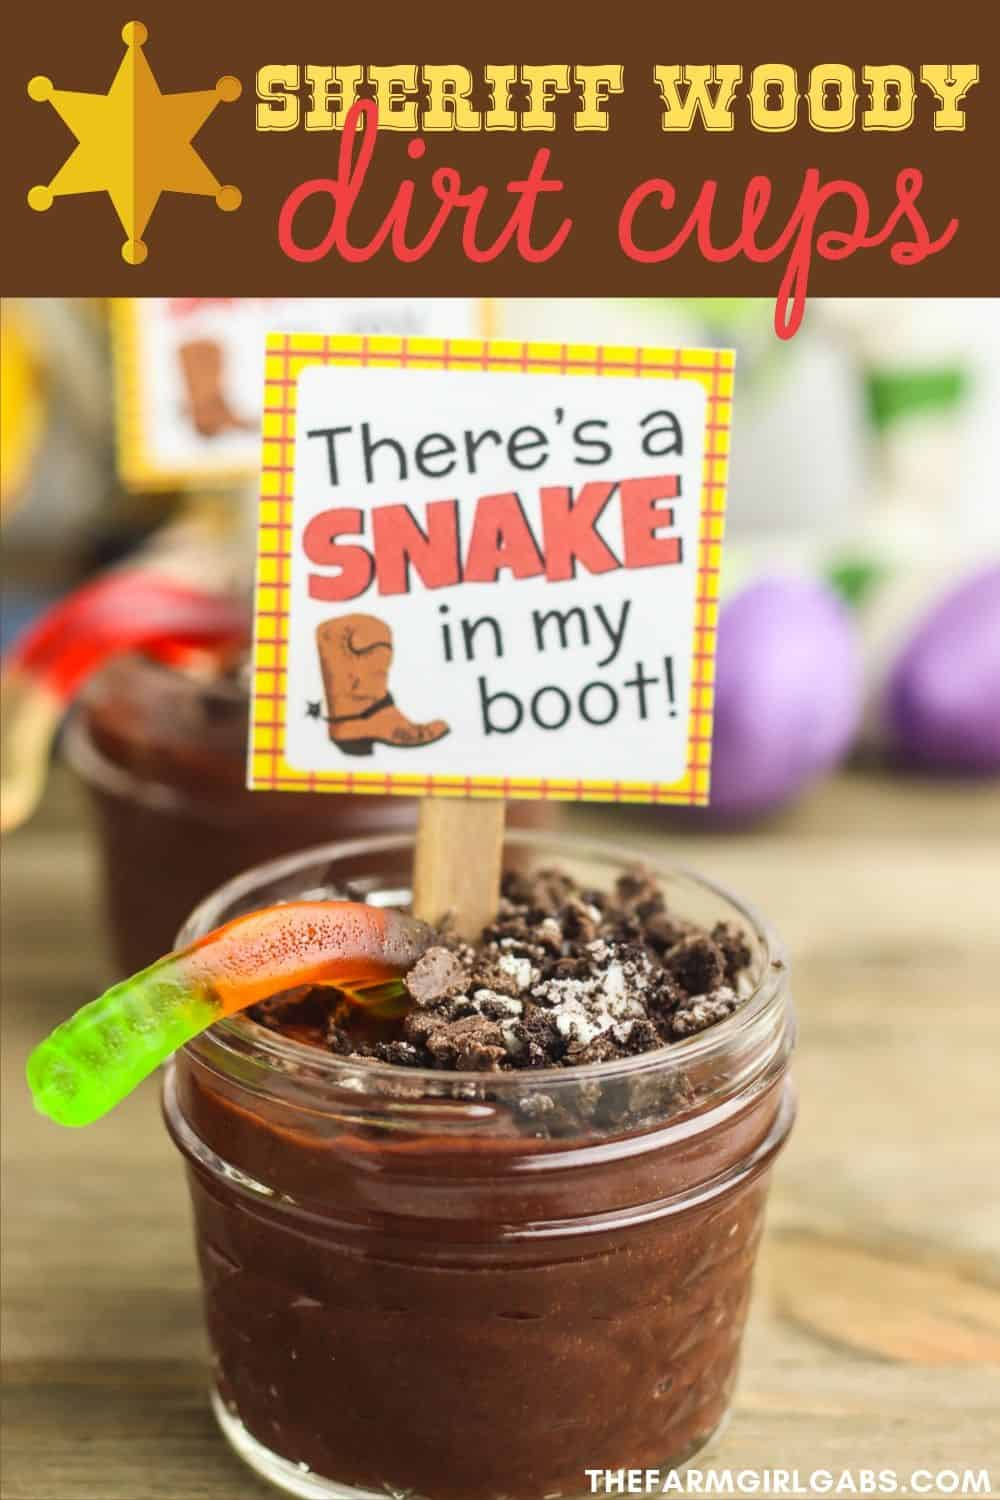 Hey howdy hey! Need some fun Toy Story Party Ideas? These Sheriff Woody Dirt Cups will be a big hit at your next birthday party. Check them out plus these other fun Toy Story Birthday Party ideas. #toystory #toystorypartyideas #toystorybirthdayparty #pixarparty #disneytips #dirtcups